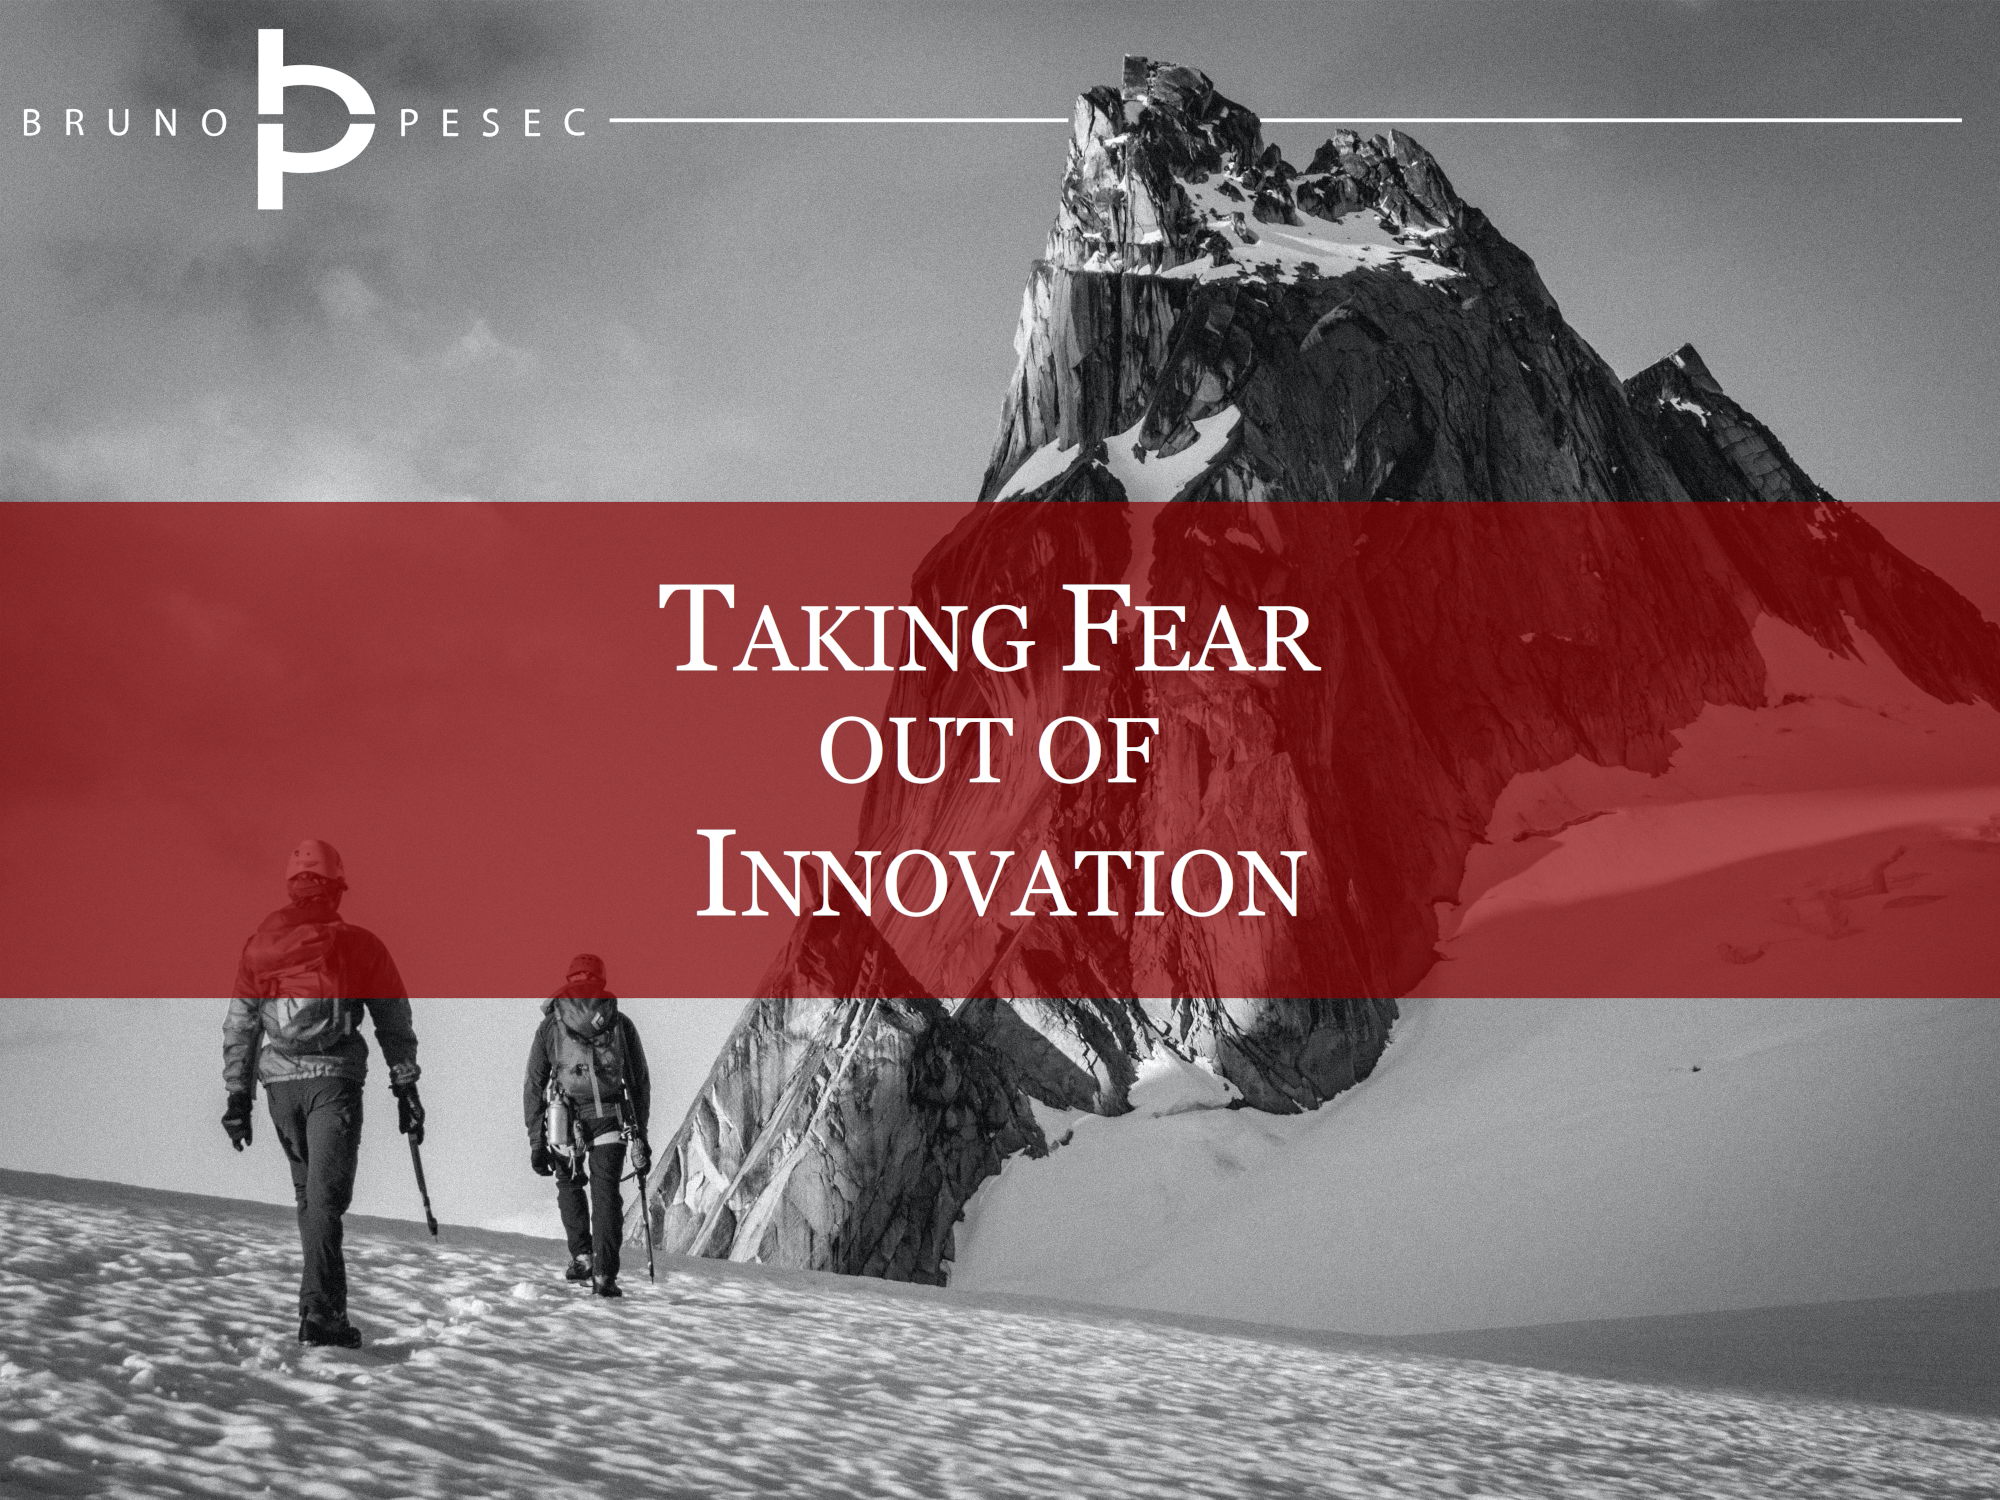 Taking fear out of innovation